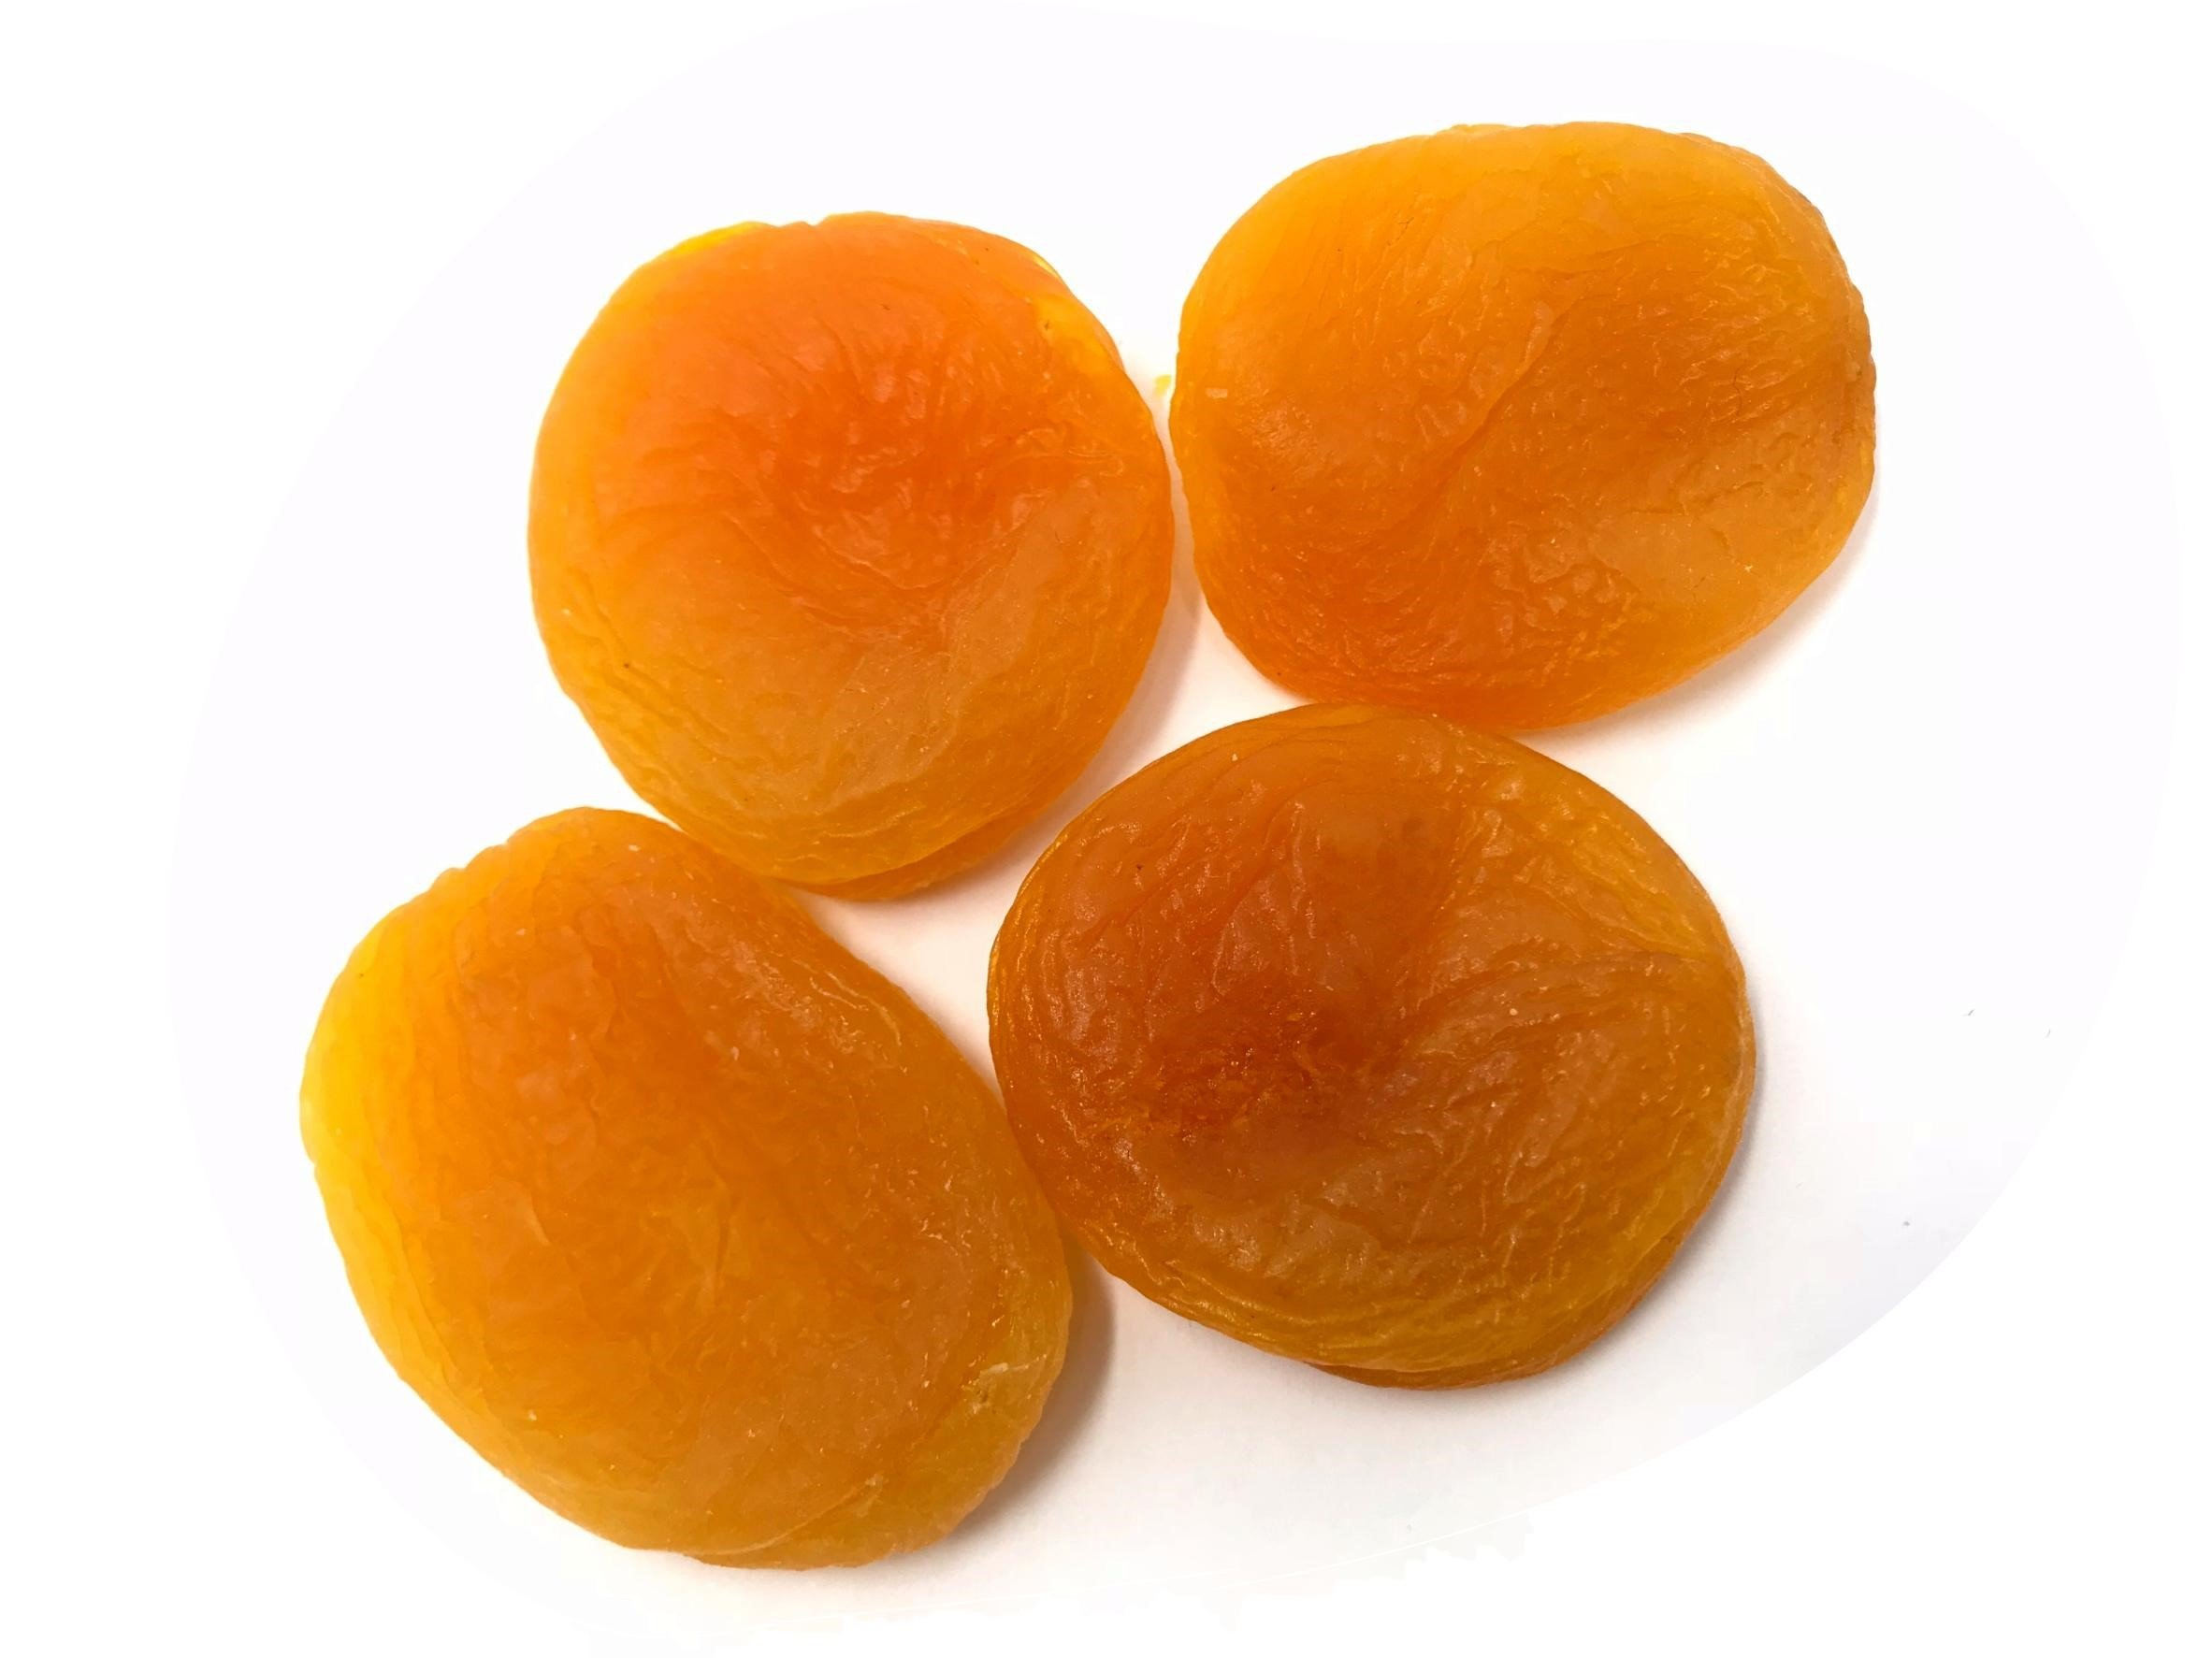 NUTS U.S. - Dried Apricots, Gourmet Turkish Apricots, JUMBO, SIZE #1, 2 LB (Pack of 2)